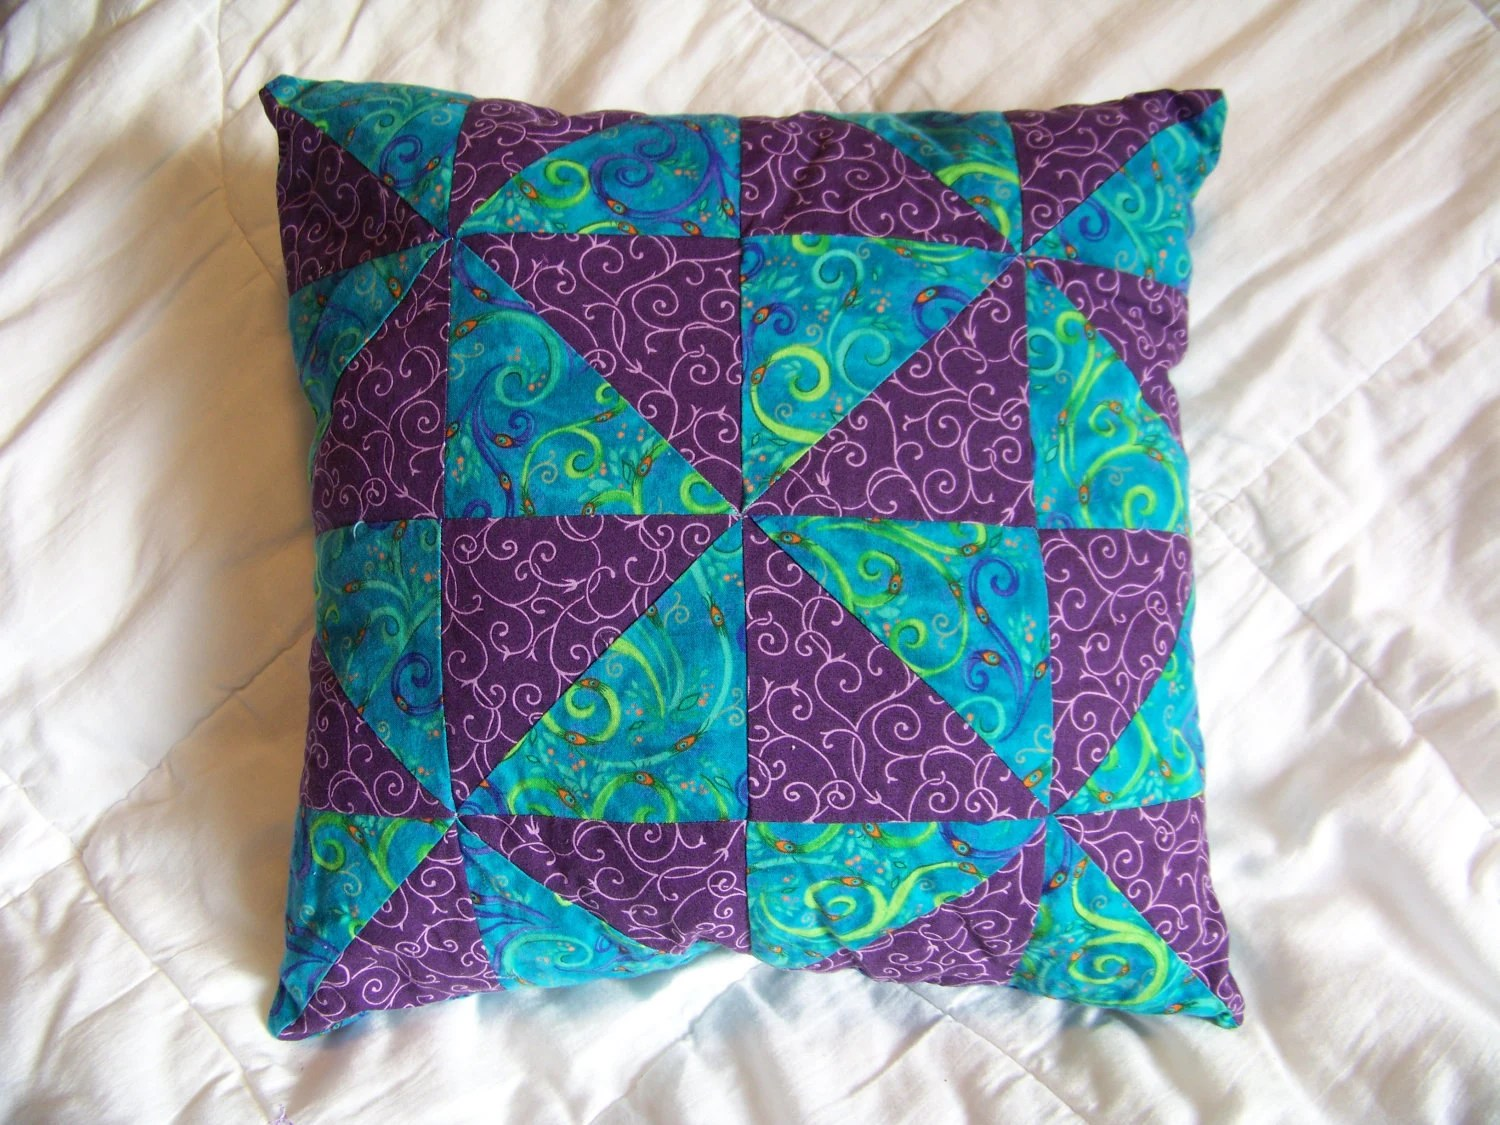 Handmade Decorative Pillow - Peacock and Purple swirls - Blue, Green, Purple, Orange